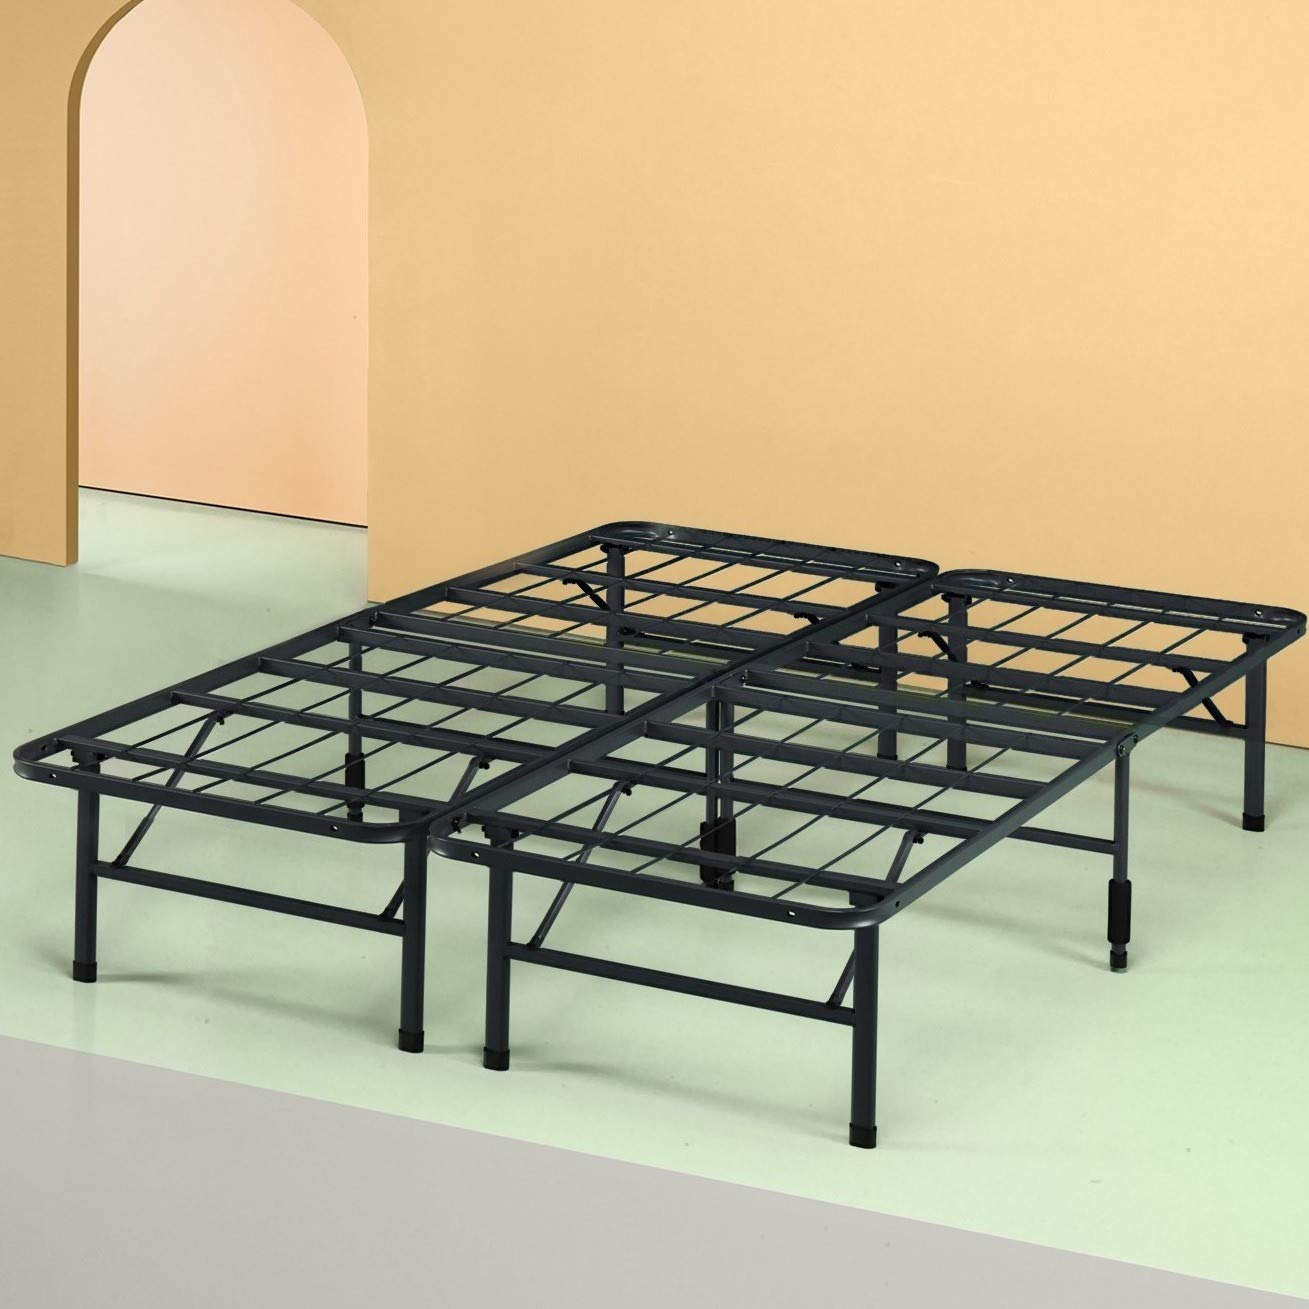 Zinus Shawn Best Bed Frames Review by www.snoremagazine.com